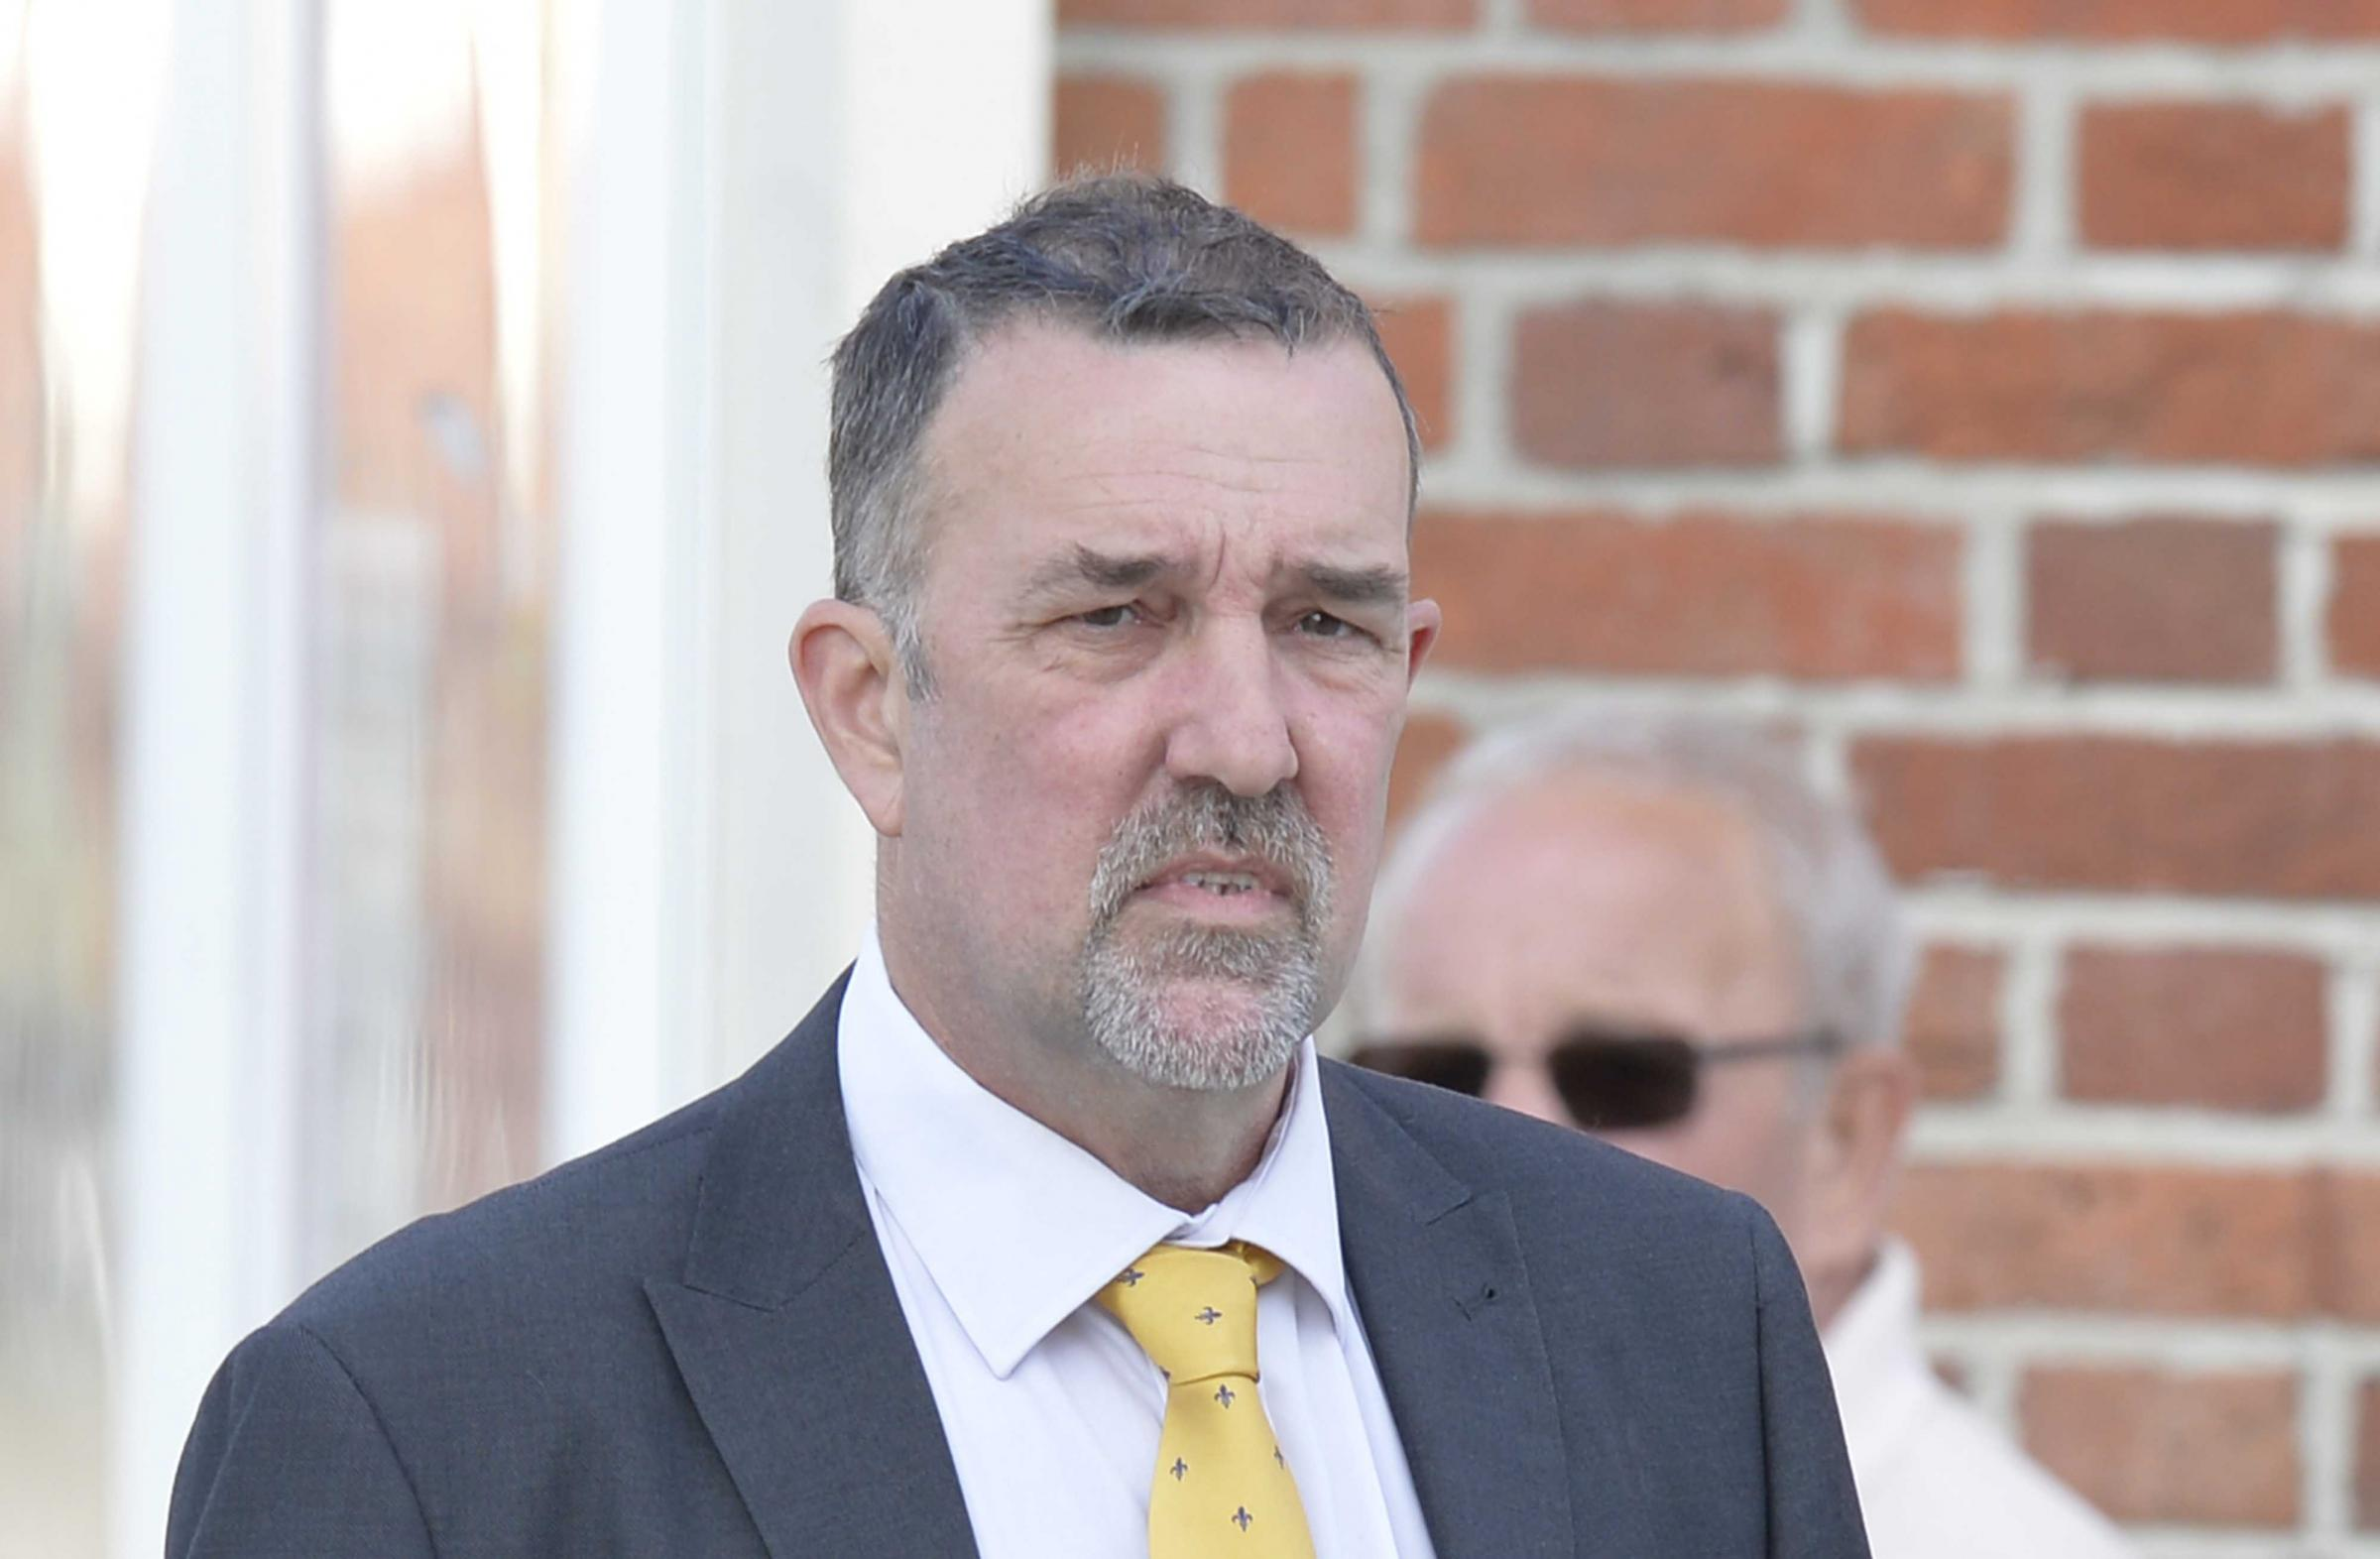 Peter Diakowski pictured outside Colchester Magistrates' Court